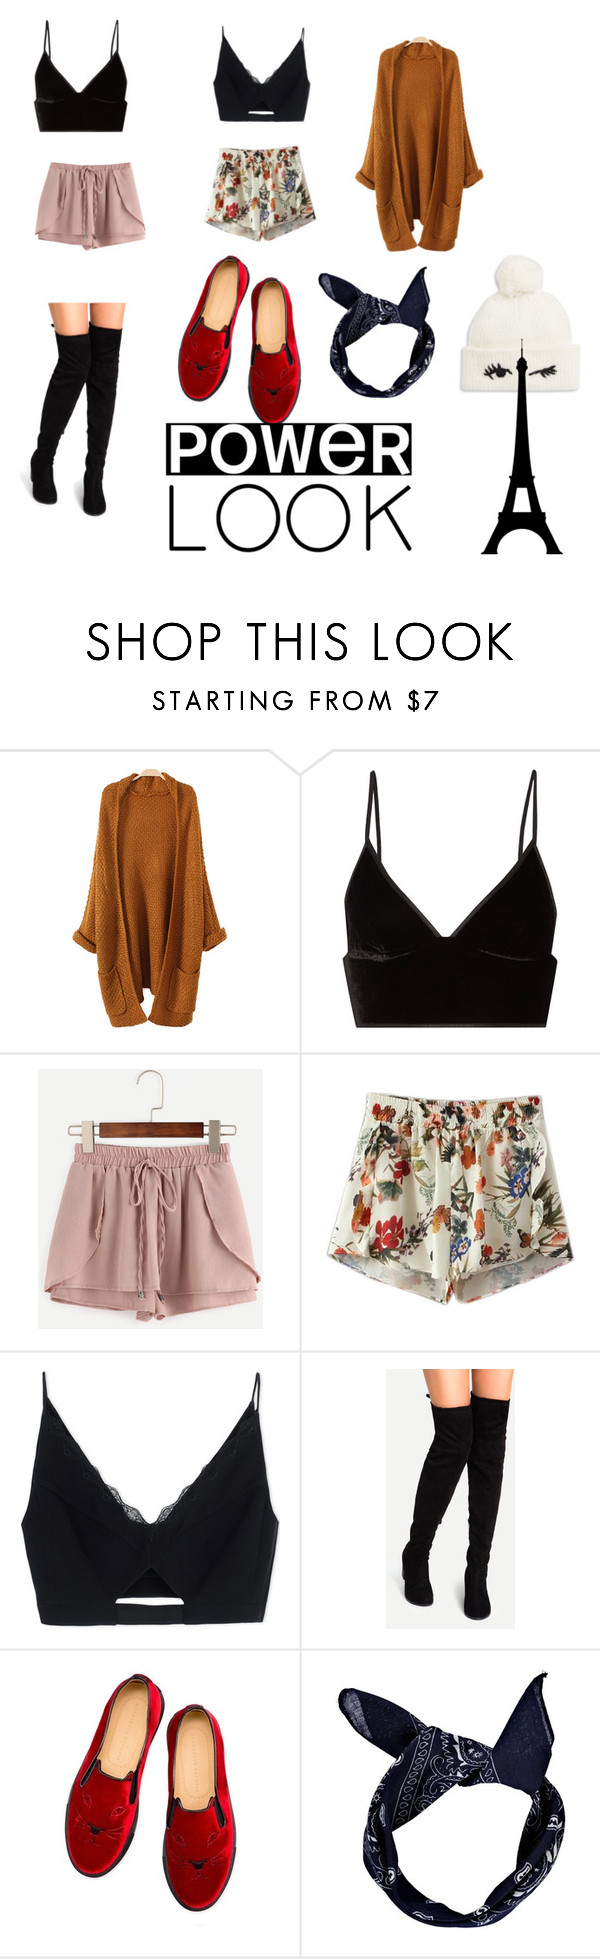 """""""Chill🍁🍁🍁🍁"""" by reachele ❤ liked on Polyvore featuring T By Alexander Wang, WithChic, Chicnova Fashion, Versace, Charlotte Olympia, Boohoo and Kate Spade"""